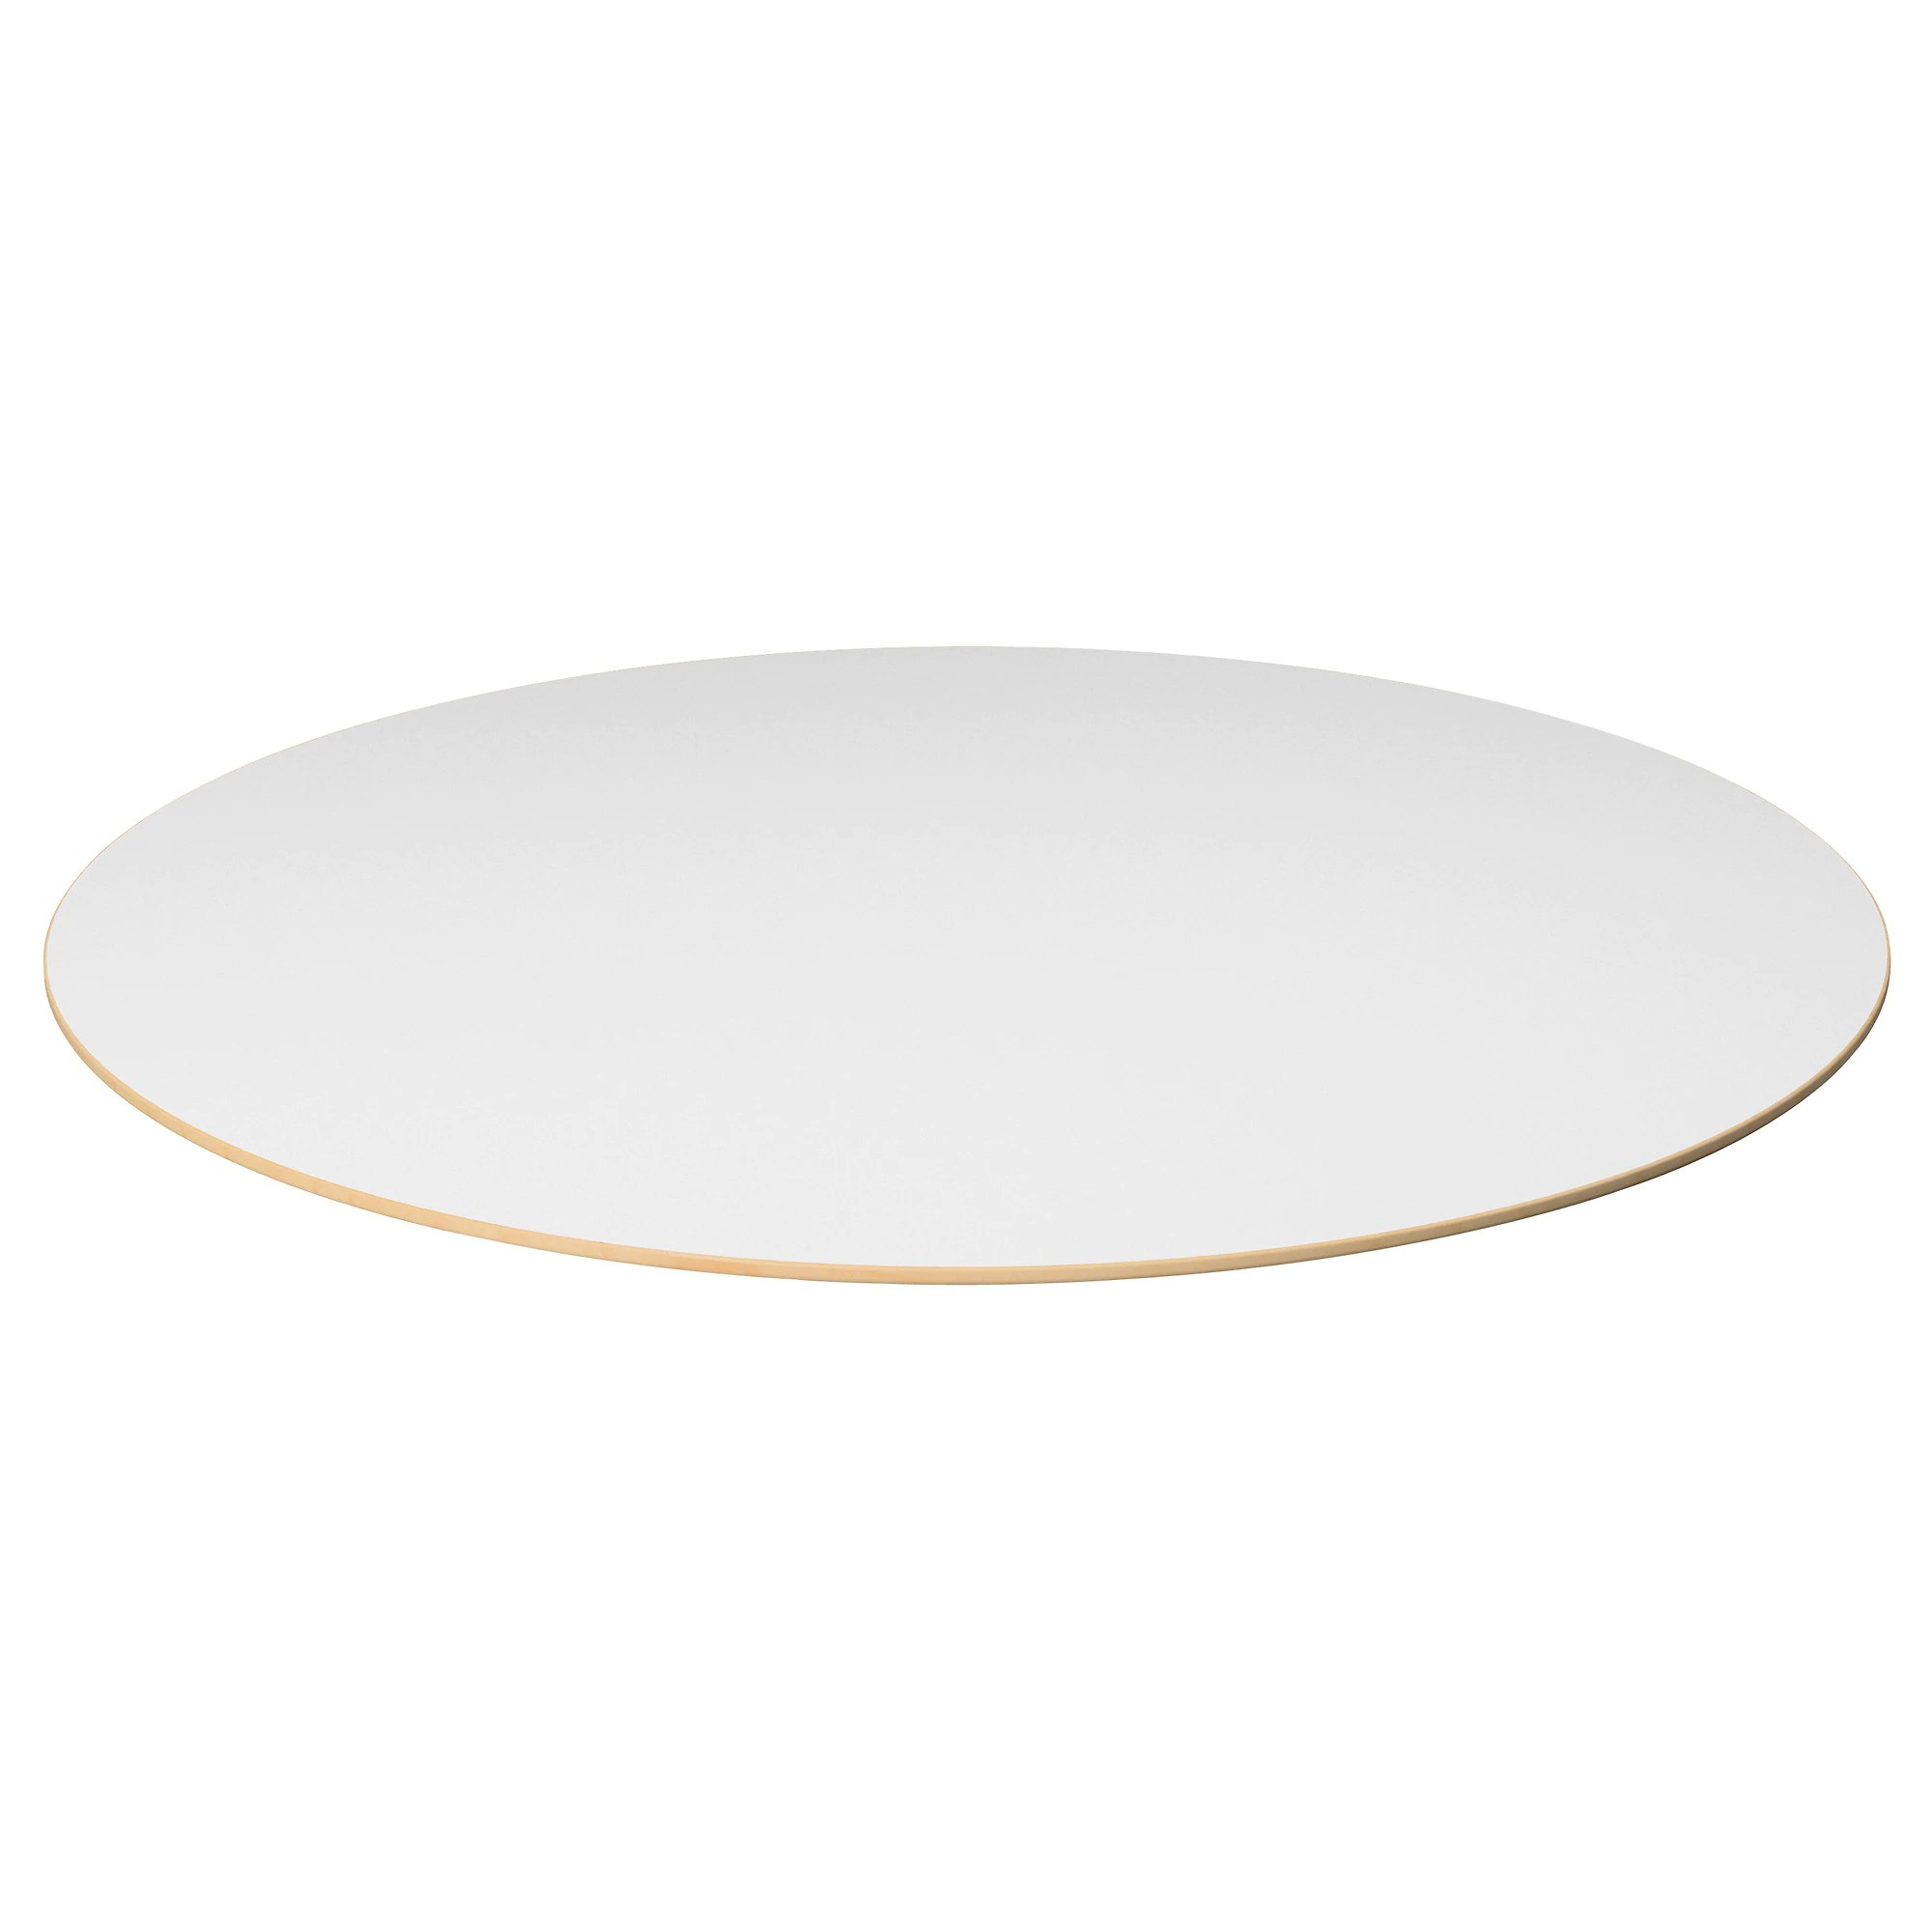 Protection Pour Table En Verre Table Ronde Plateau Verre Ikea